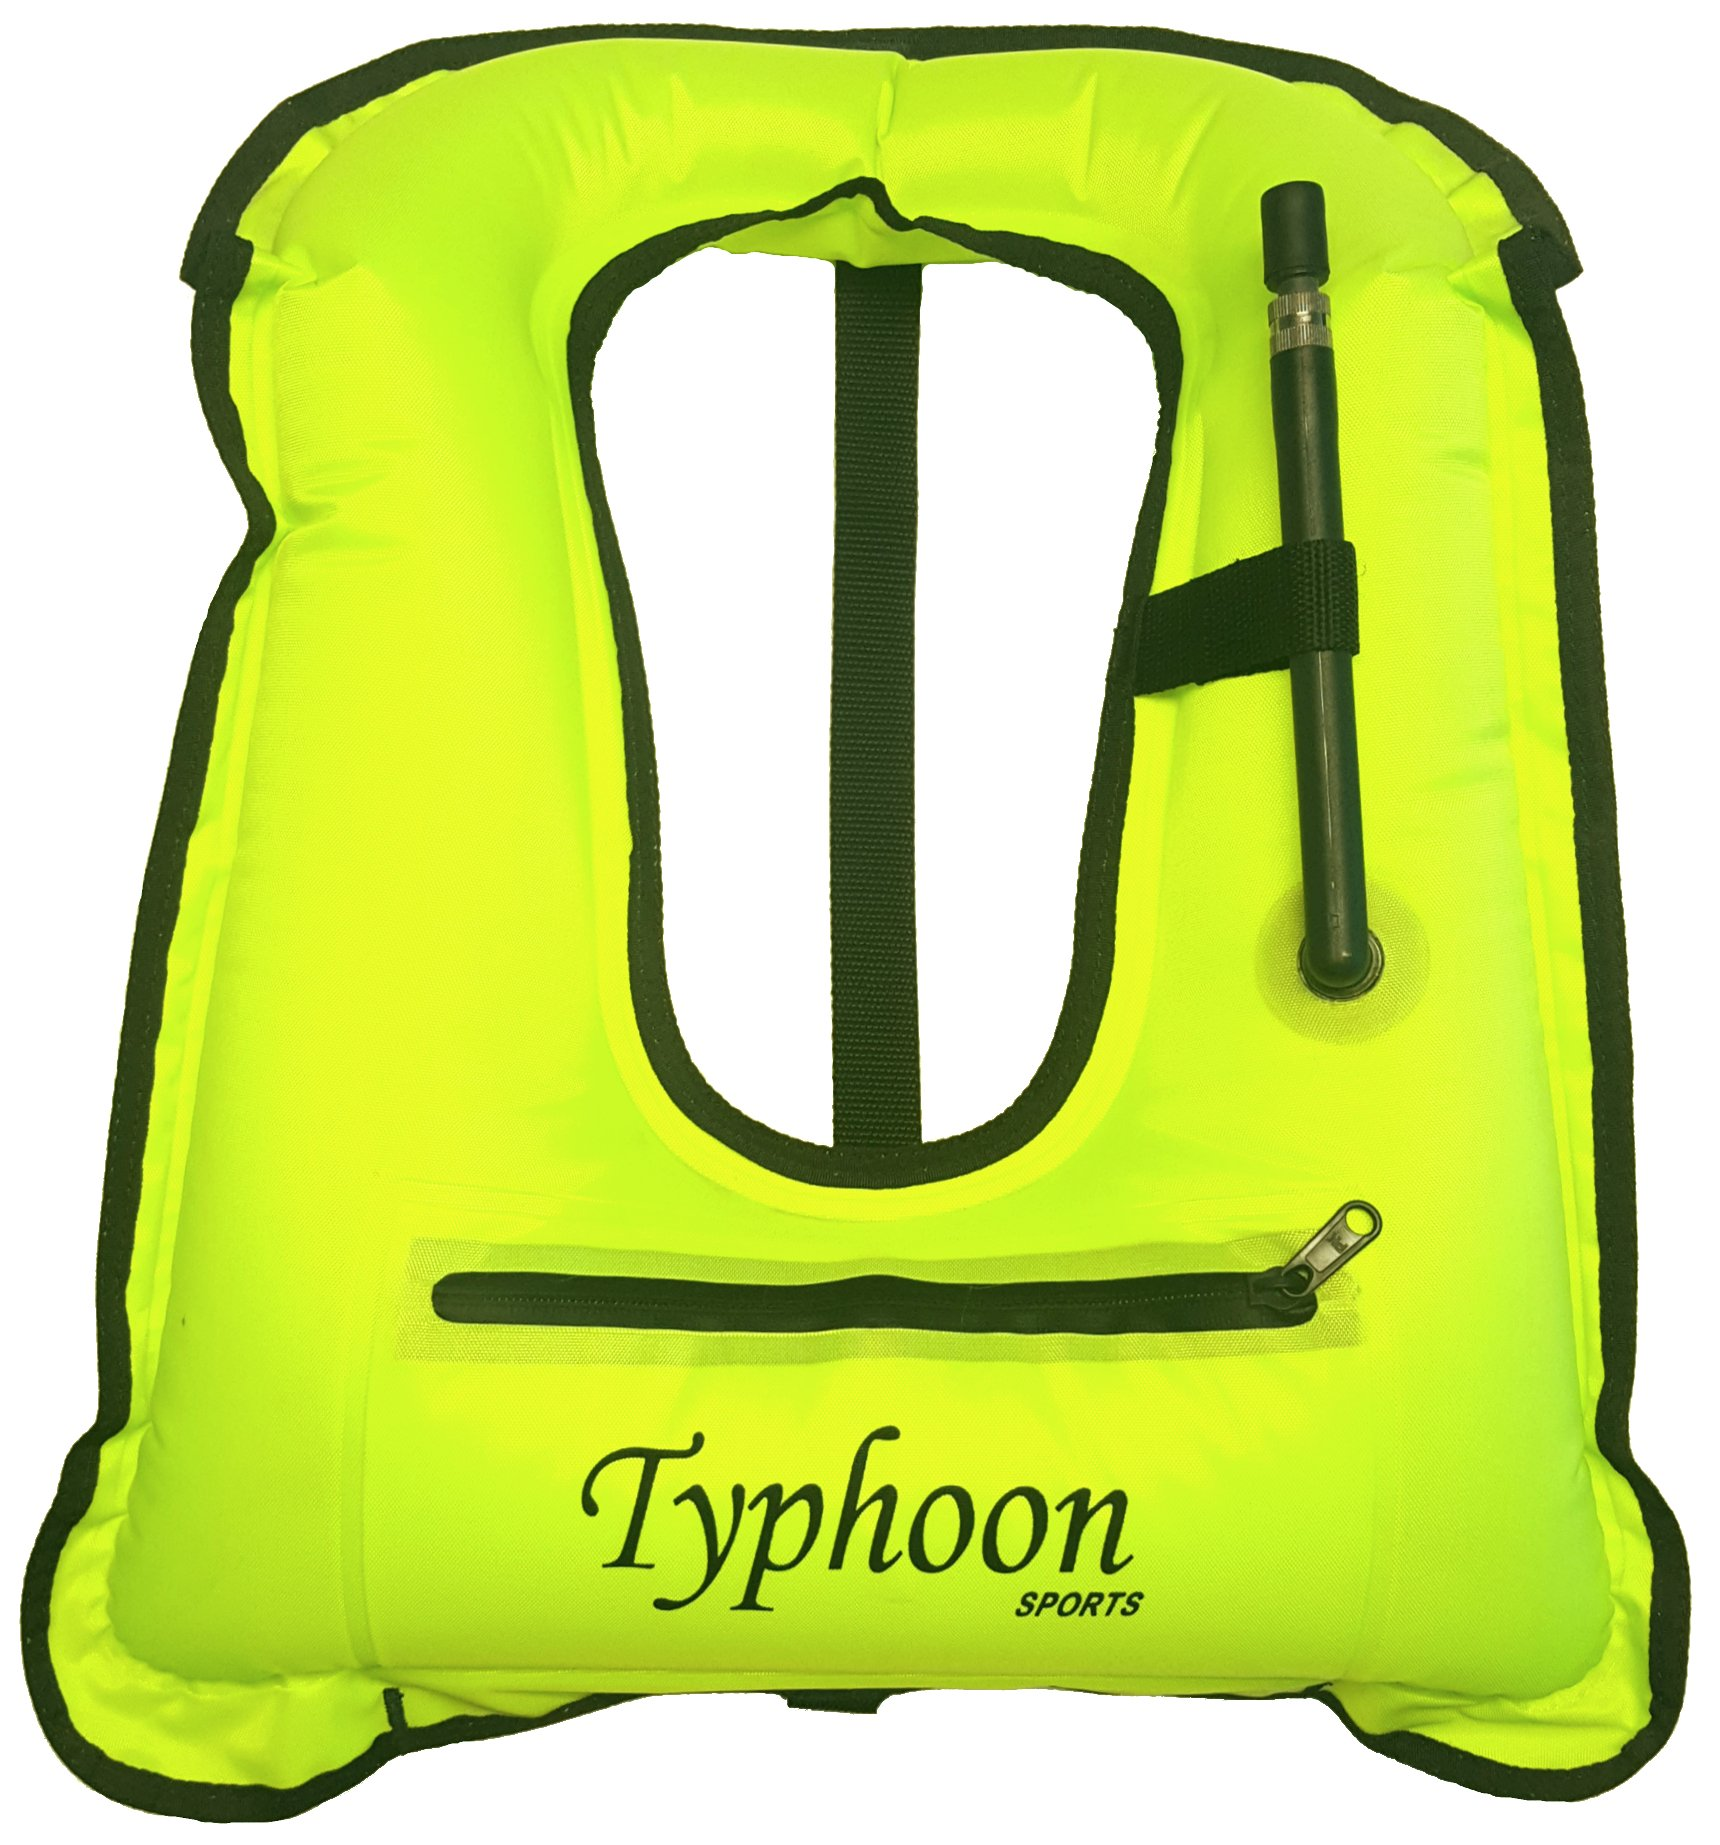 Typhoon Sports Inflatable Snorkel Vest Safety Jacket Horseshoe Design Swimming Diving (Adult, Youth 80-100 lbs) by Typhoon Sports